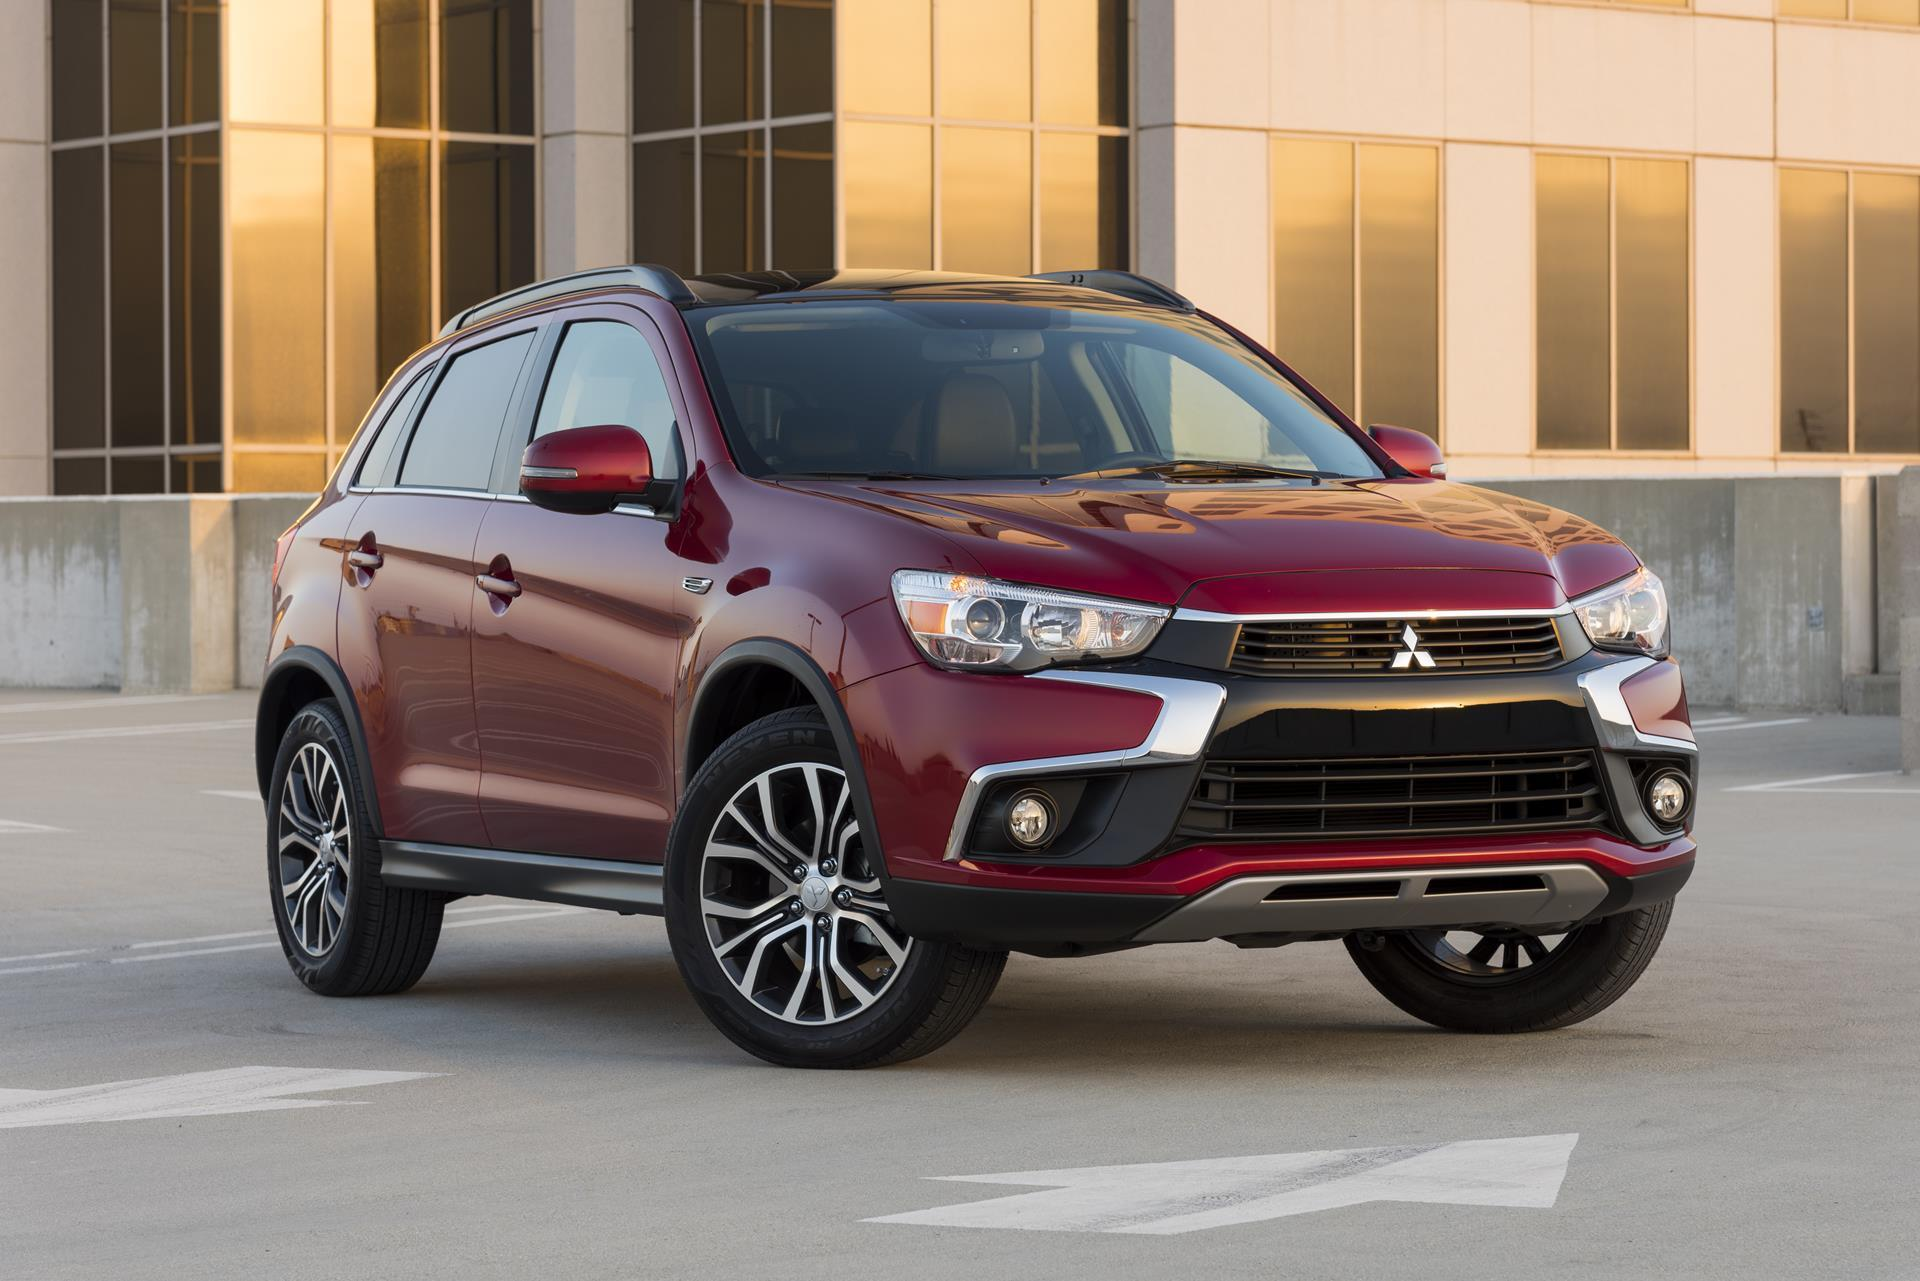 2017 mitsubishi outlander sport. Black Bedroom Furniture Sets. Home Design Ideas